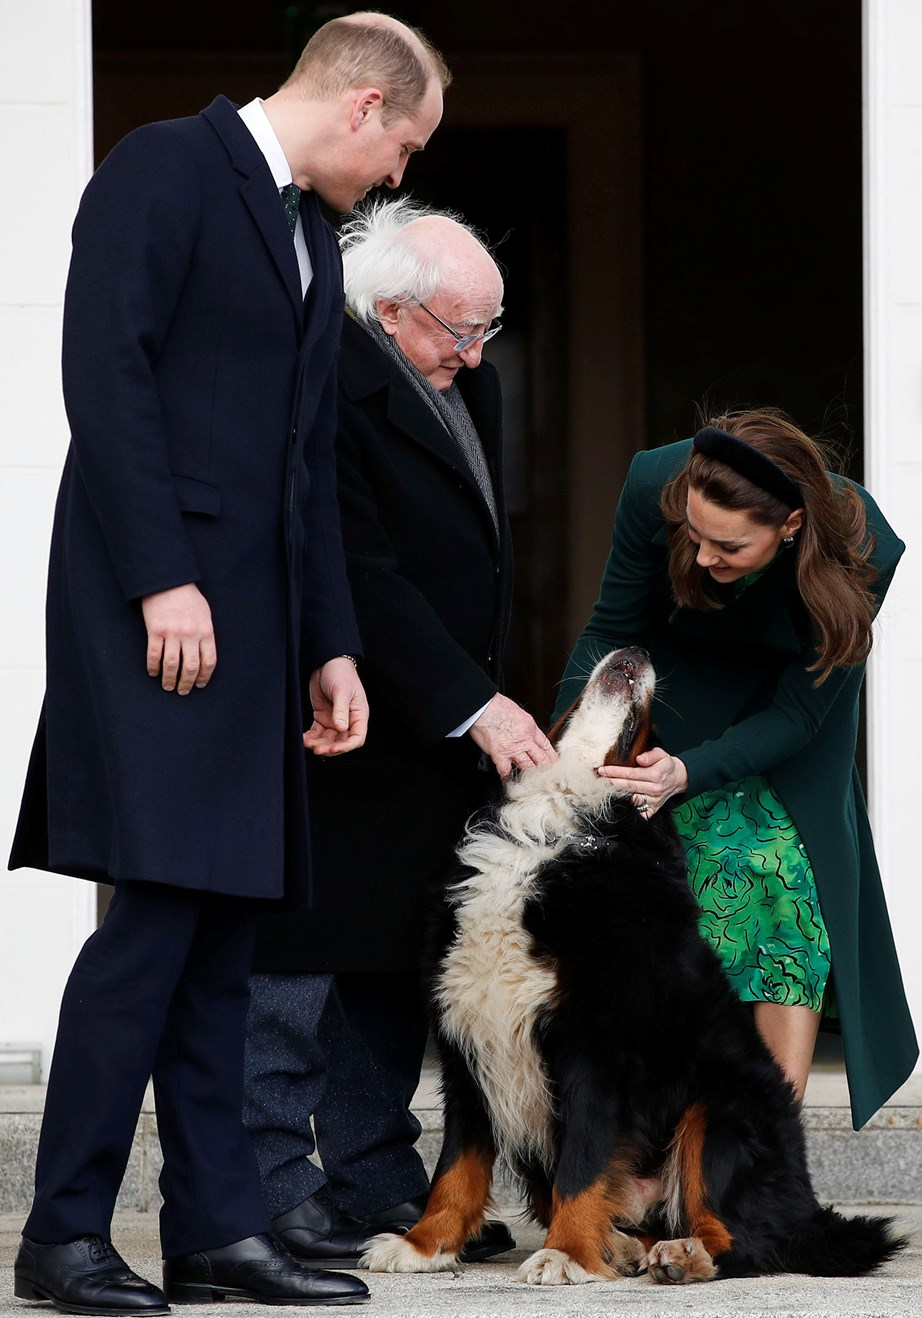 William and Catherine met the President's dog on their first day in Ireland. *(Image: Getty)*